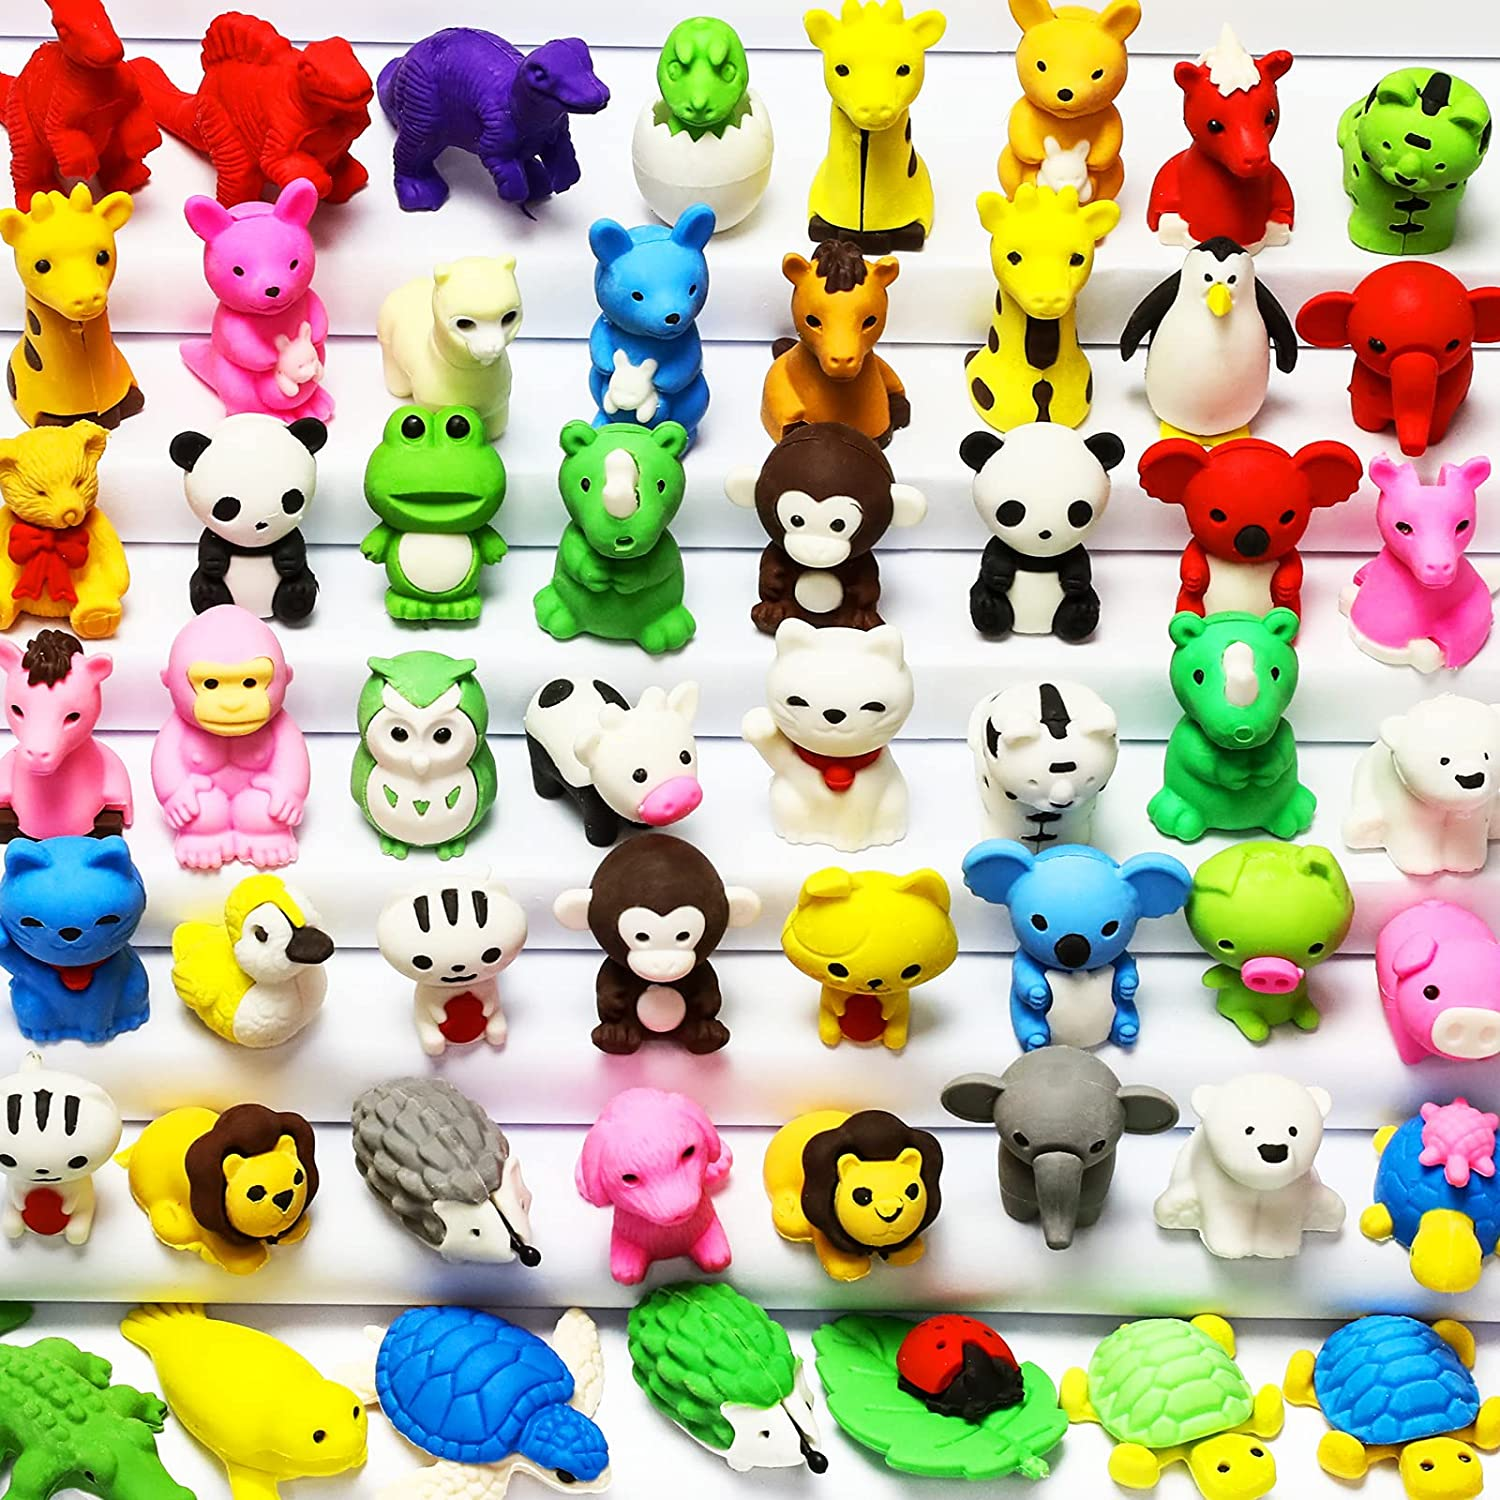 MGparty 60PCS Animal Erasers for Kids Pencil Erasers Puzzle Erasers 3D Mini Bulk Pull Apart Erasers for Birthday Party Favors Carnival Prizes Box Classroom Rewards Treasure Box Games Prizes